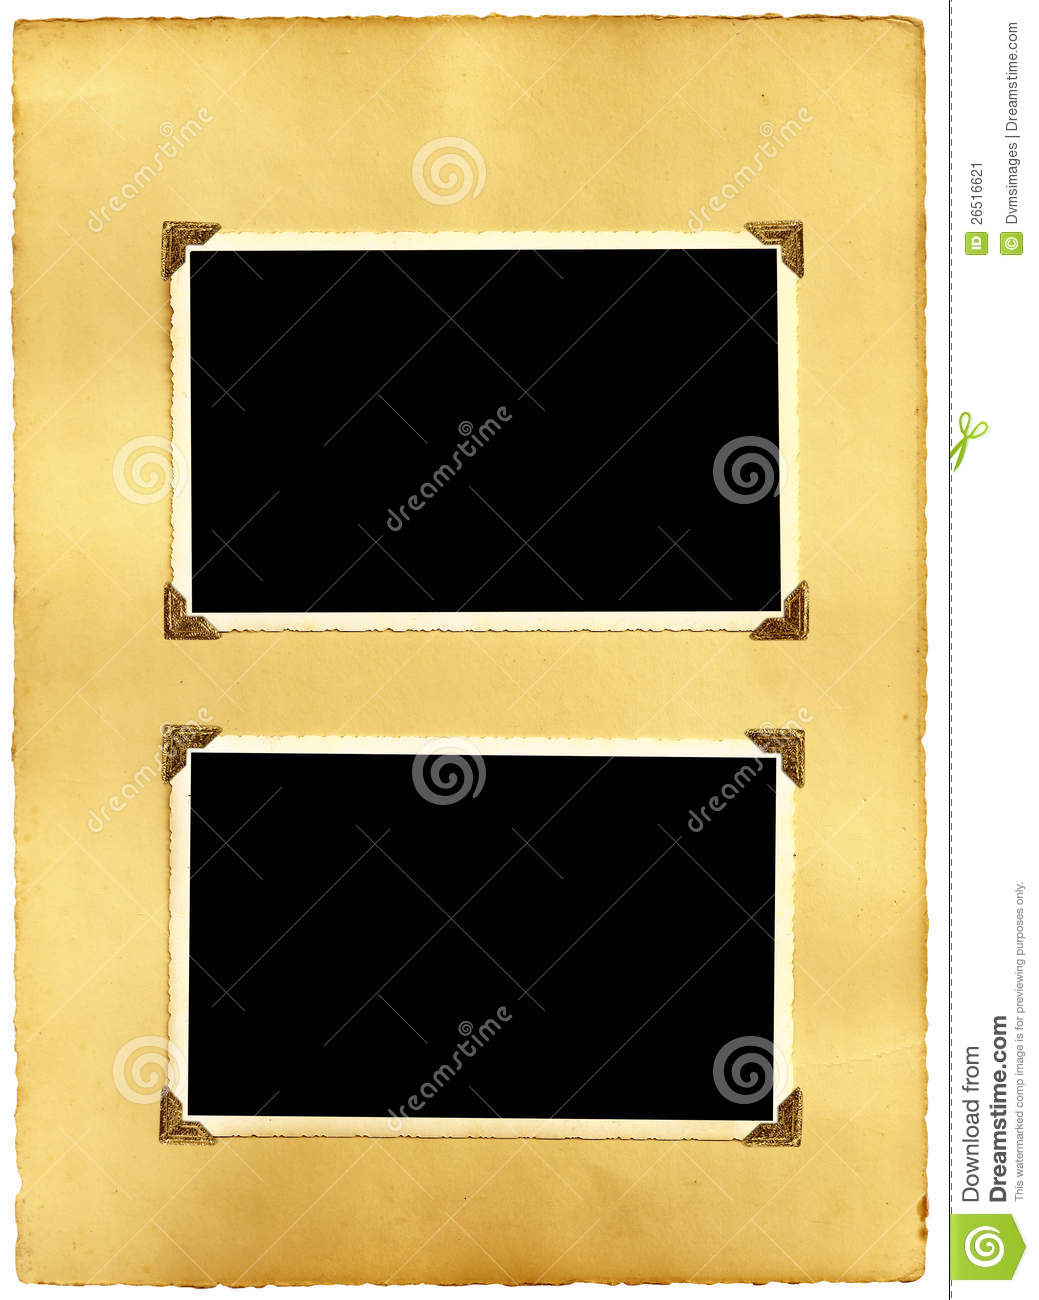 Old Vintage Photo Album Page Stock Image Image Of Corners Mounted